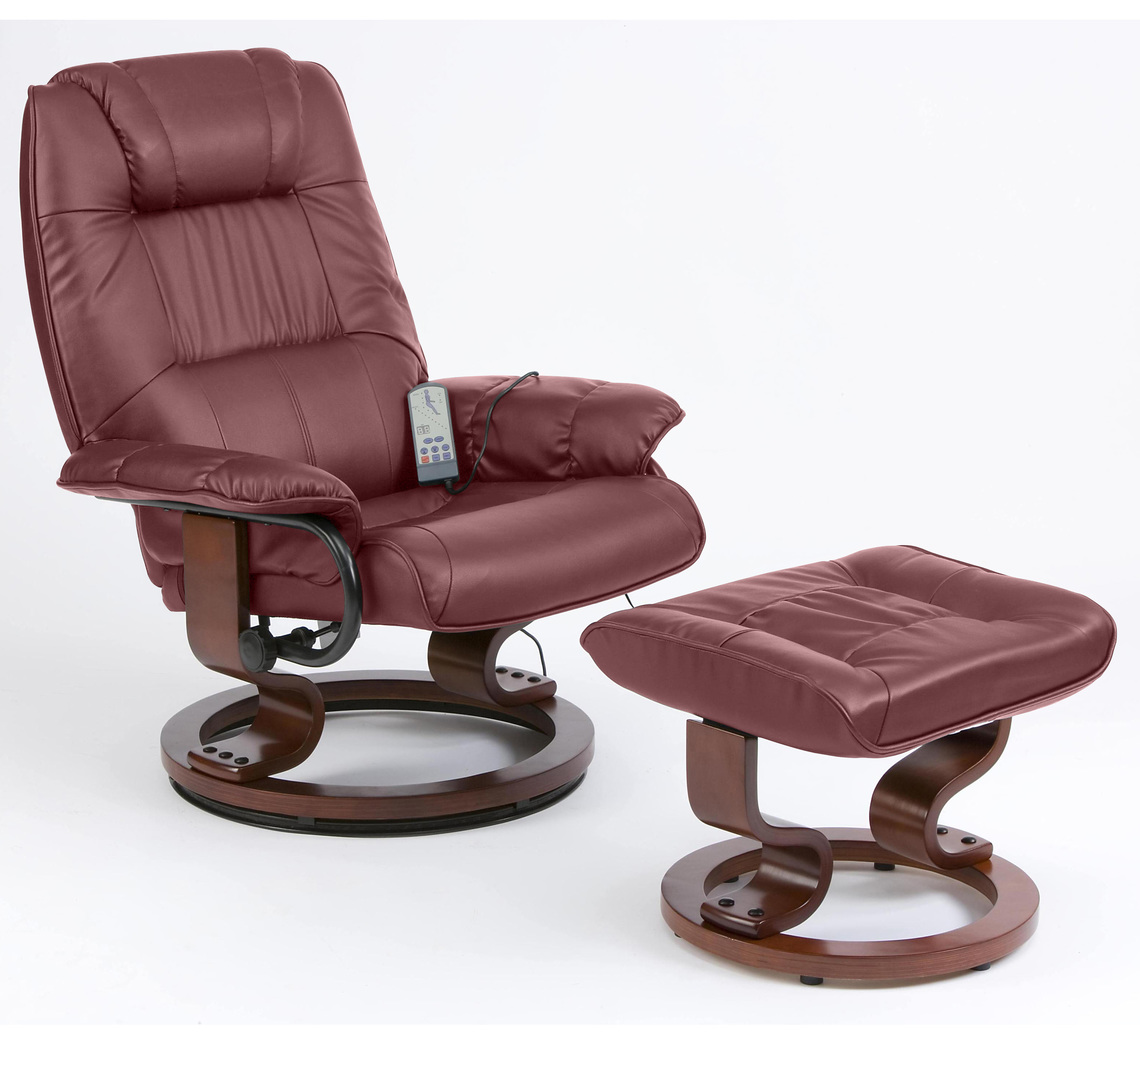 Furniture | Massage Chairs |